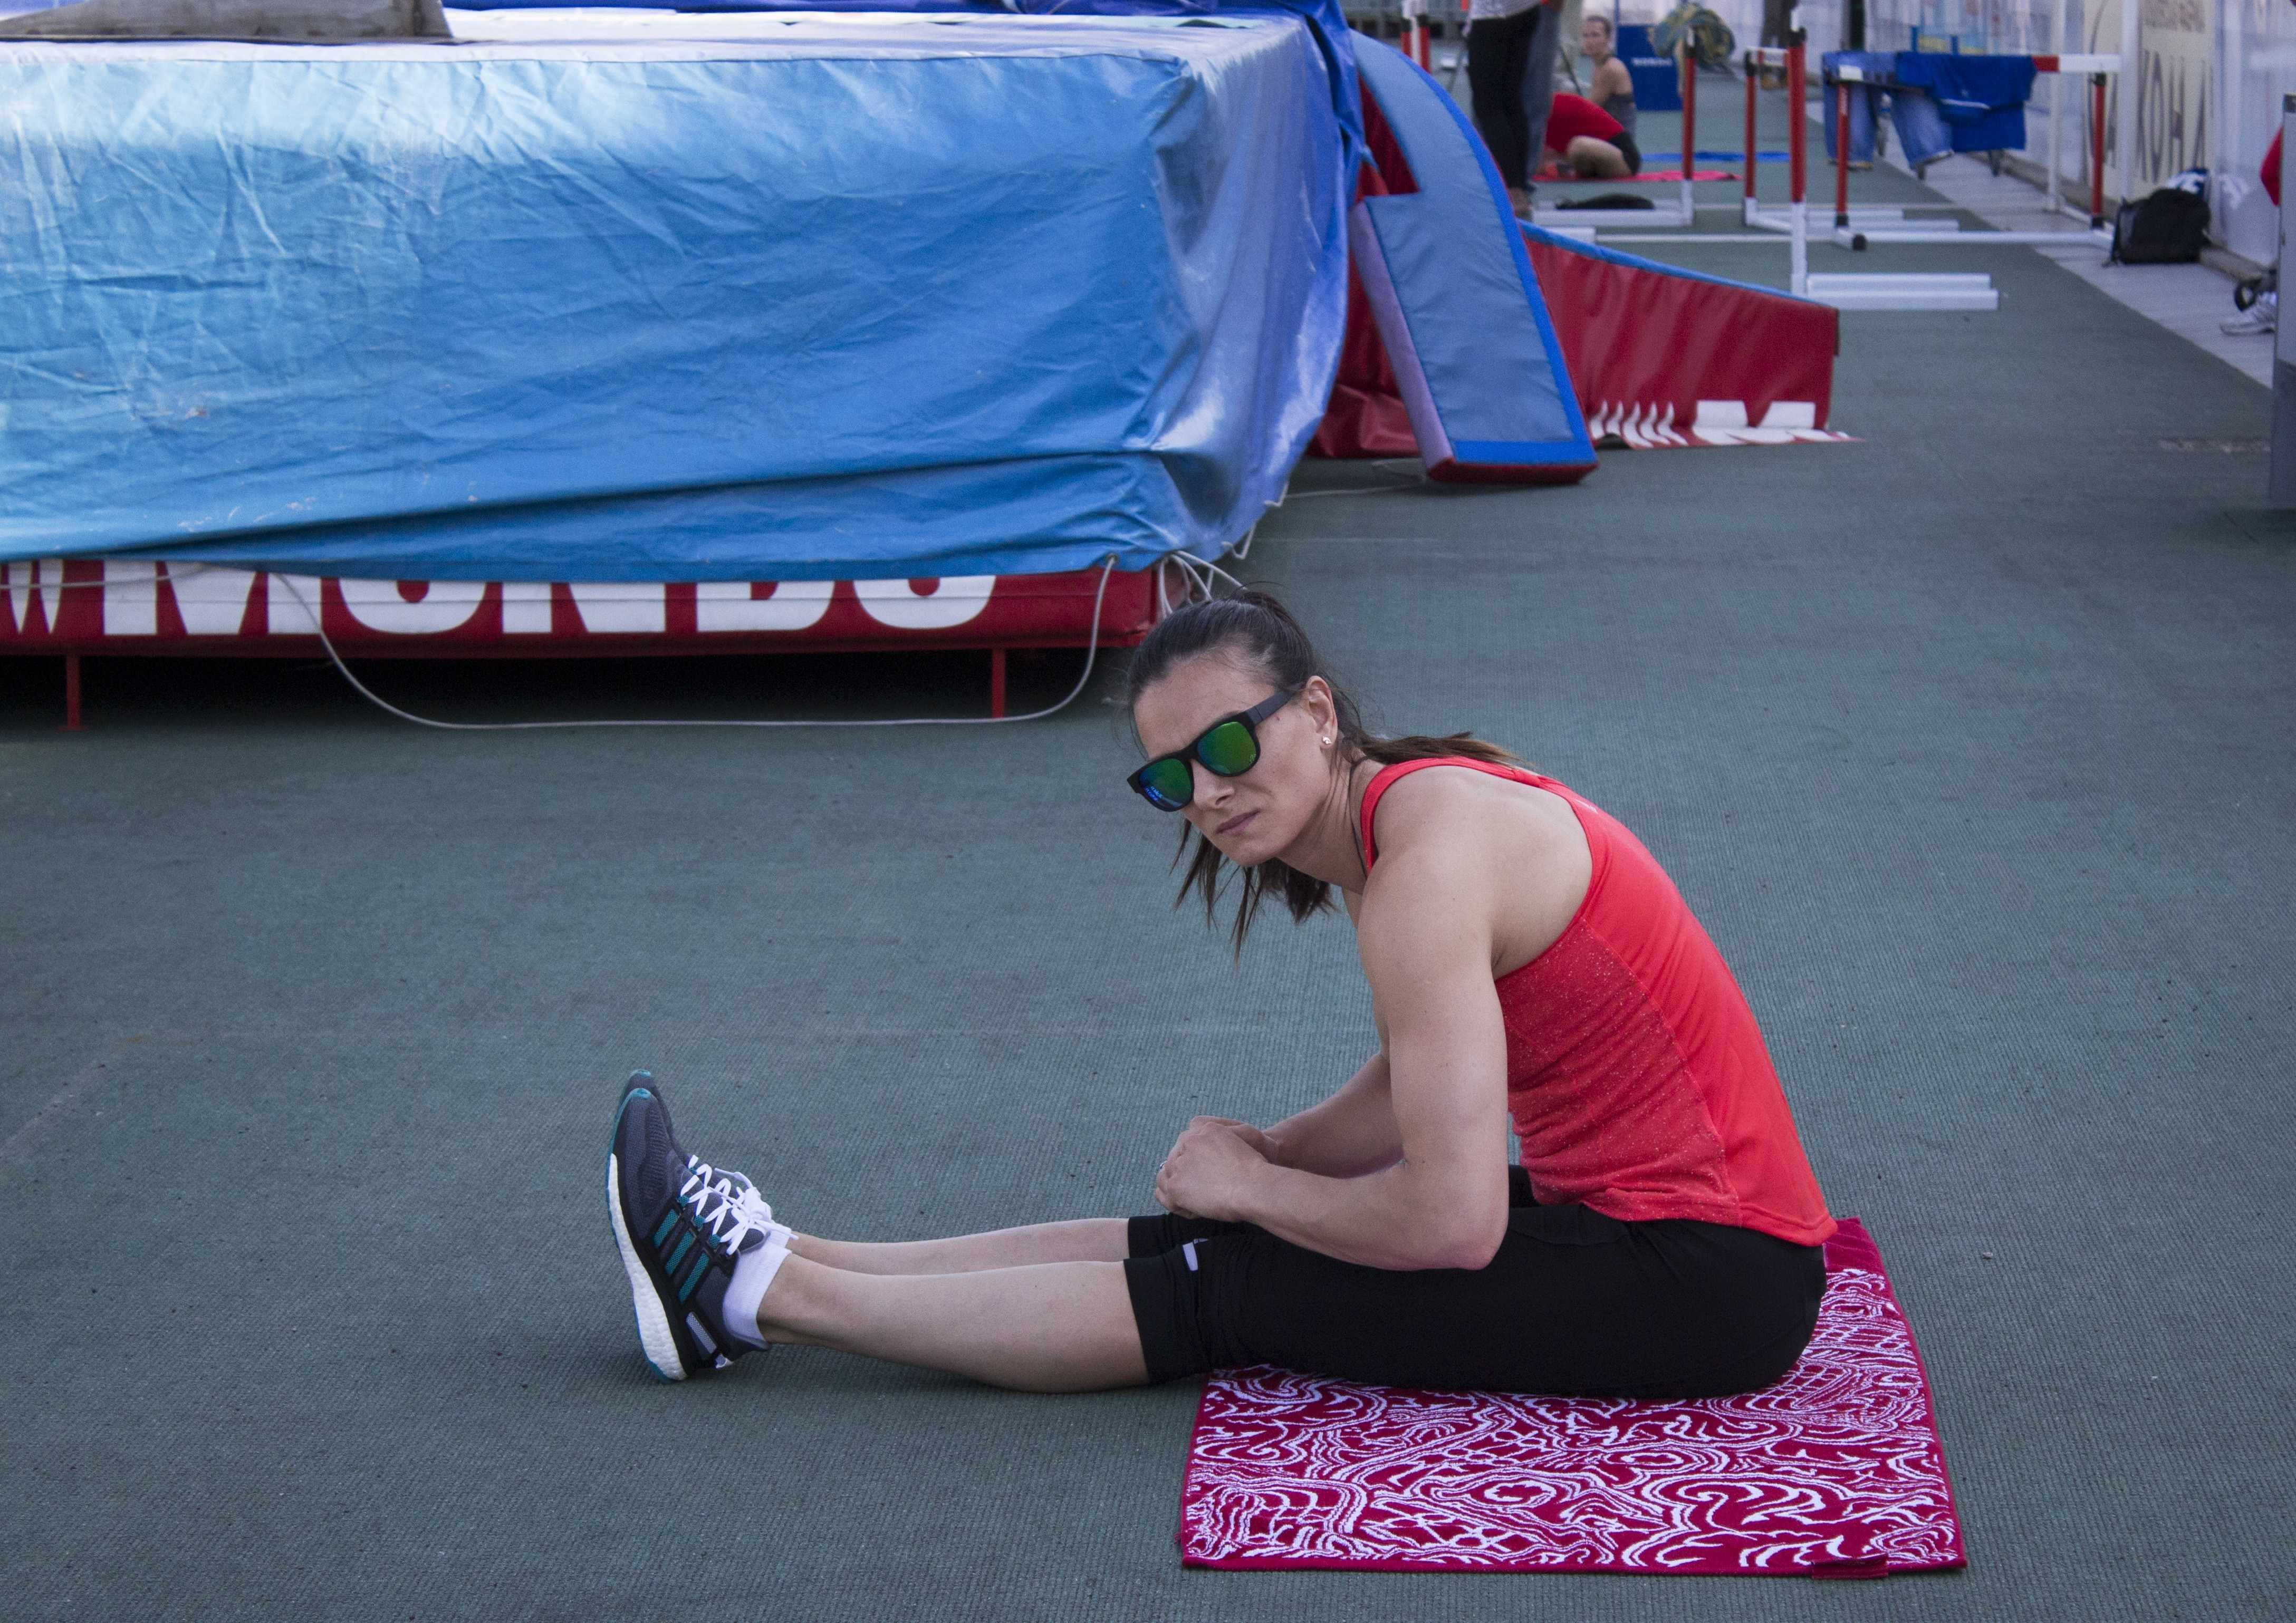 Russia's pole vaulter Yelena Isinbayeva rests after warming up during a training session prior to the National track and field championships at a stadium in Cheboksary, Russia, Sunday, June 19, 2016. The Russian national track and field championships were